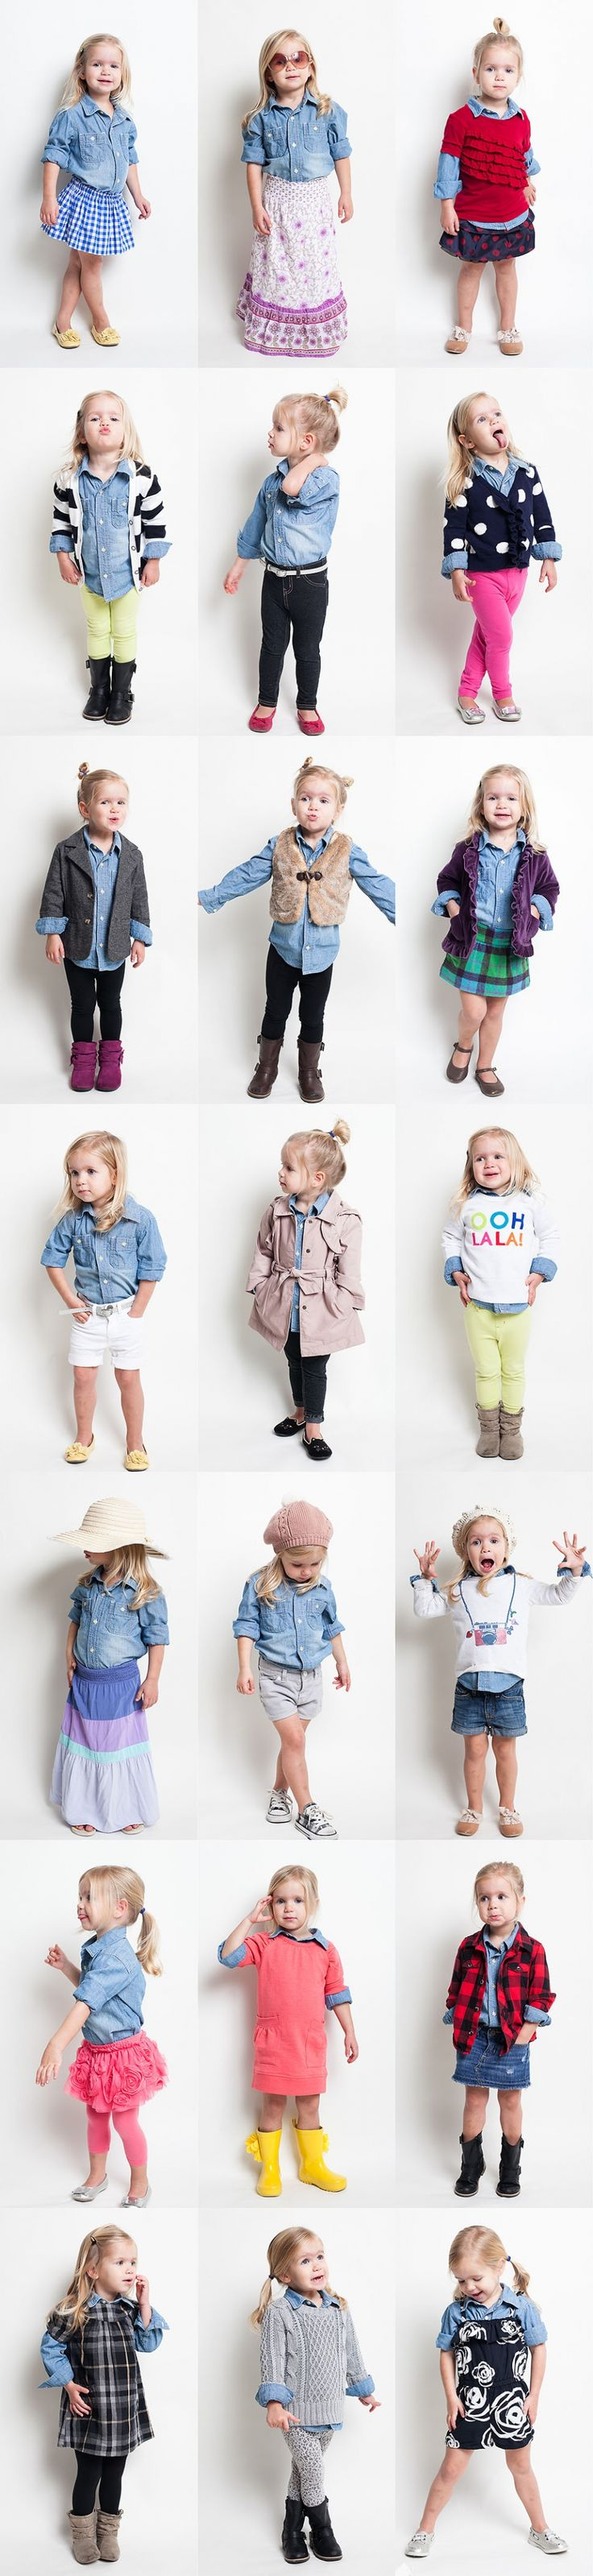 Toddler Chambray Shirt Project!!!   21 ways for your toddler to wear chambray!... I don't even dress this nice